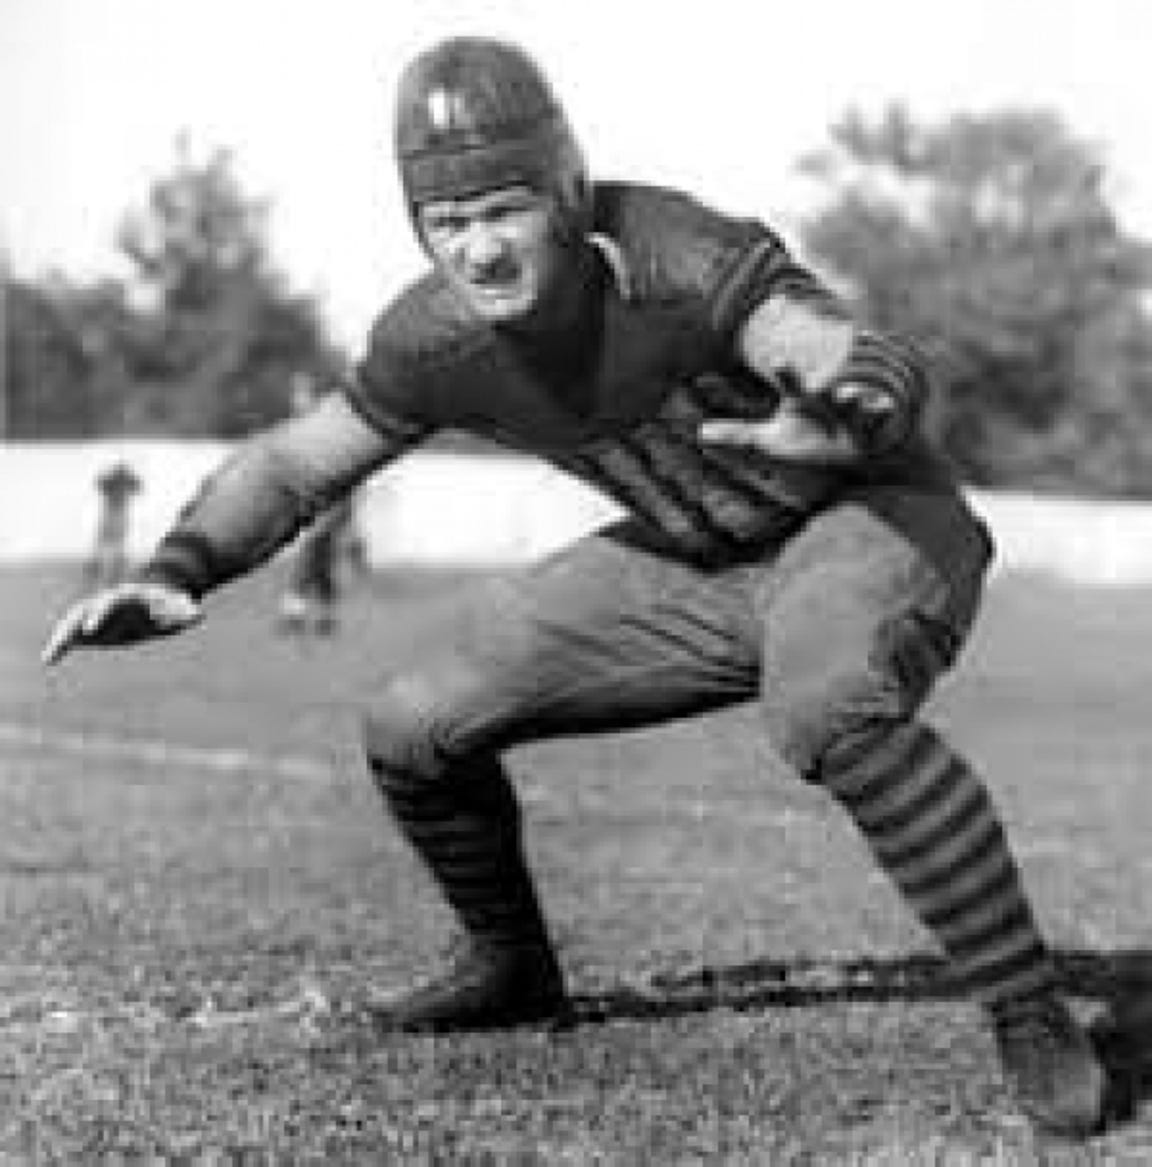 Elmer Sleight was an All-American lineman on Purdue's 1929 Big Ten championship team.